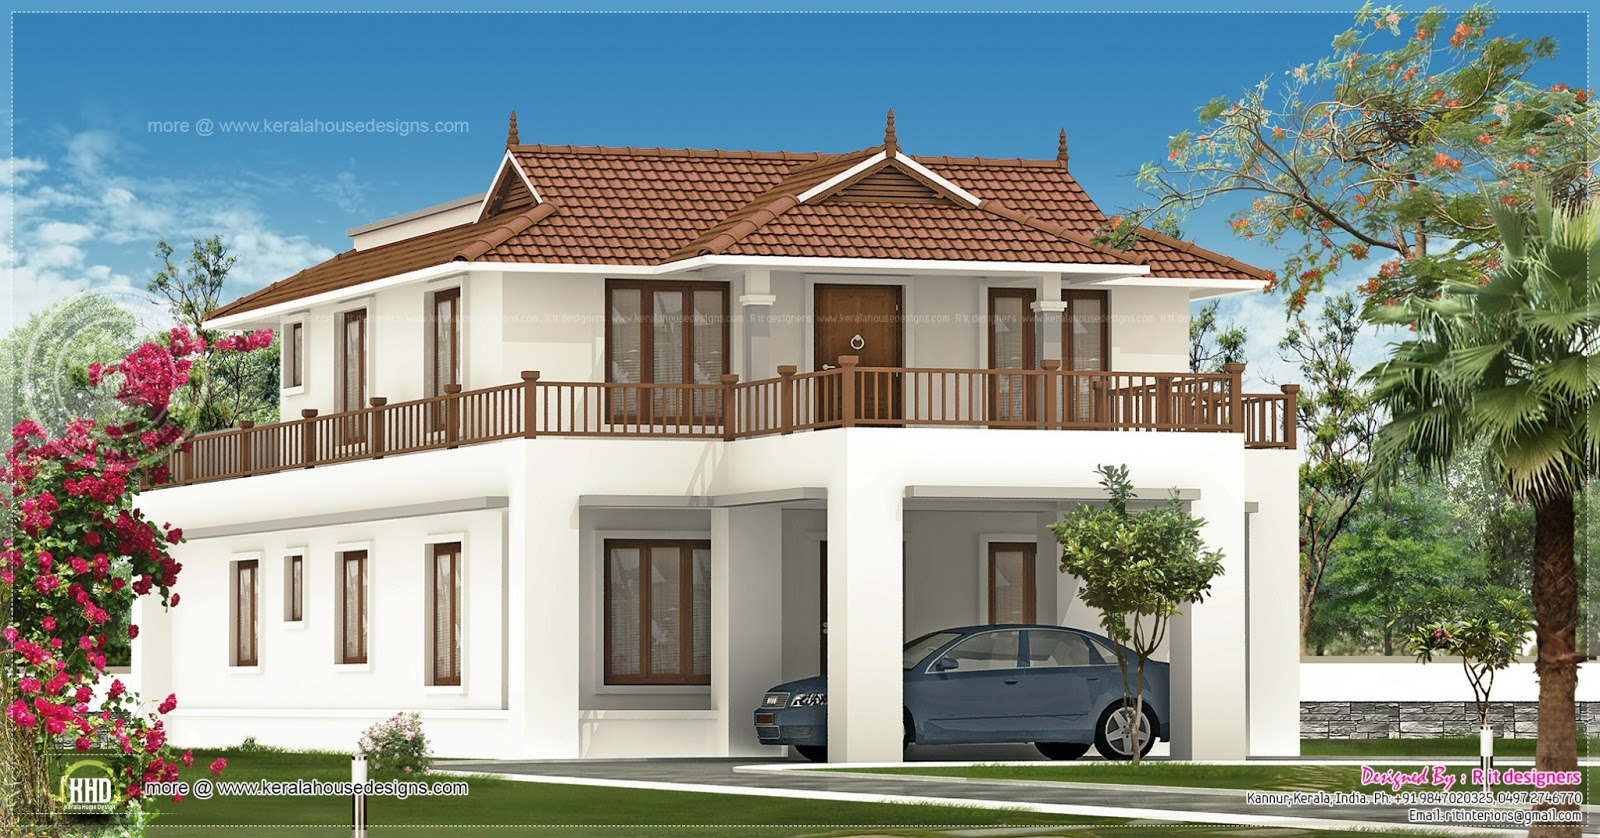 2820 square feet house exterior design home kerala plans for Home design exterior india